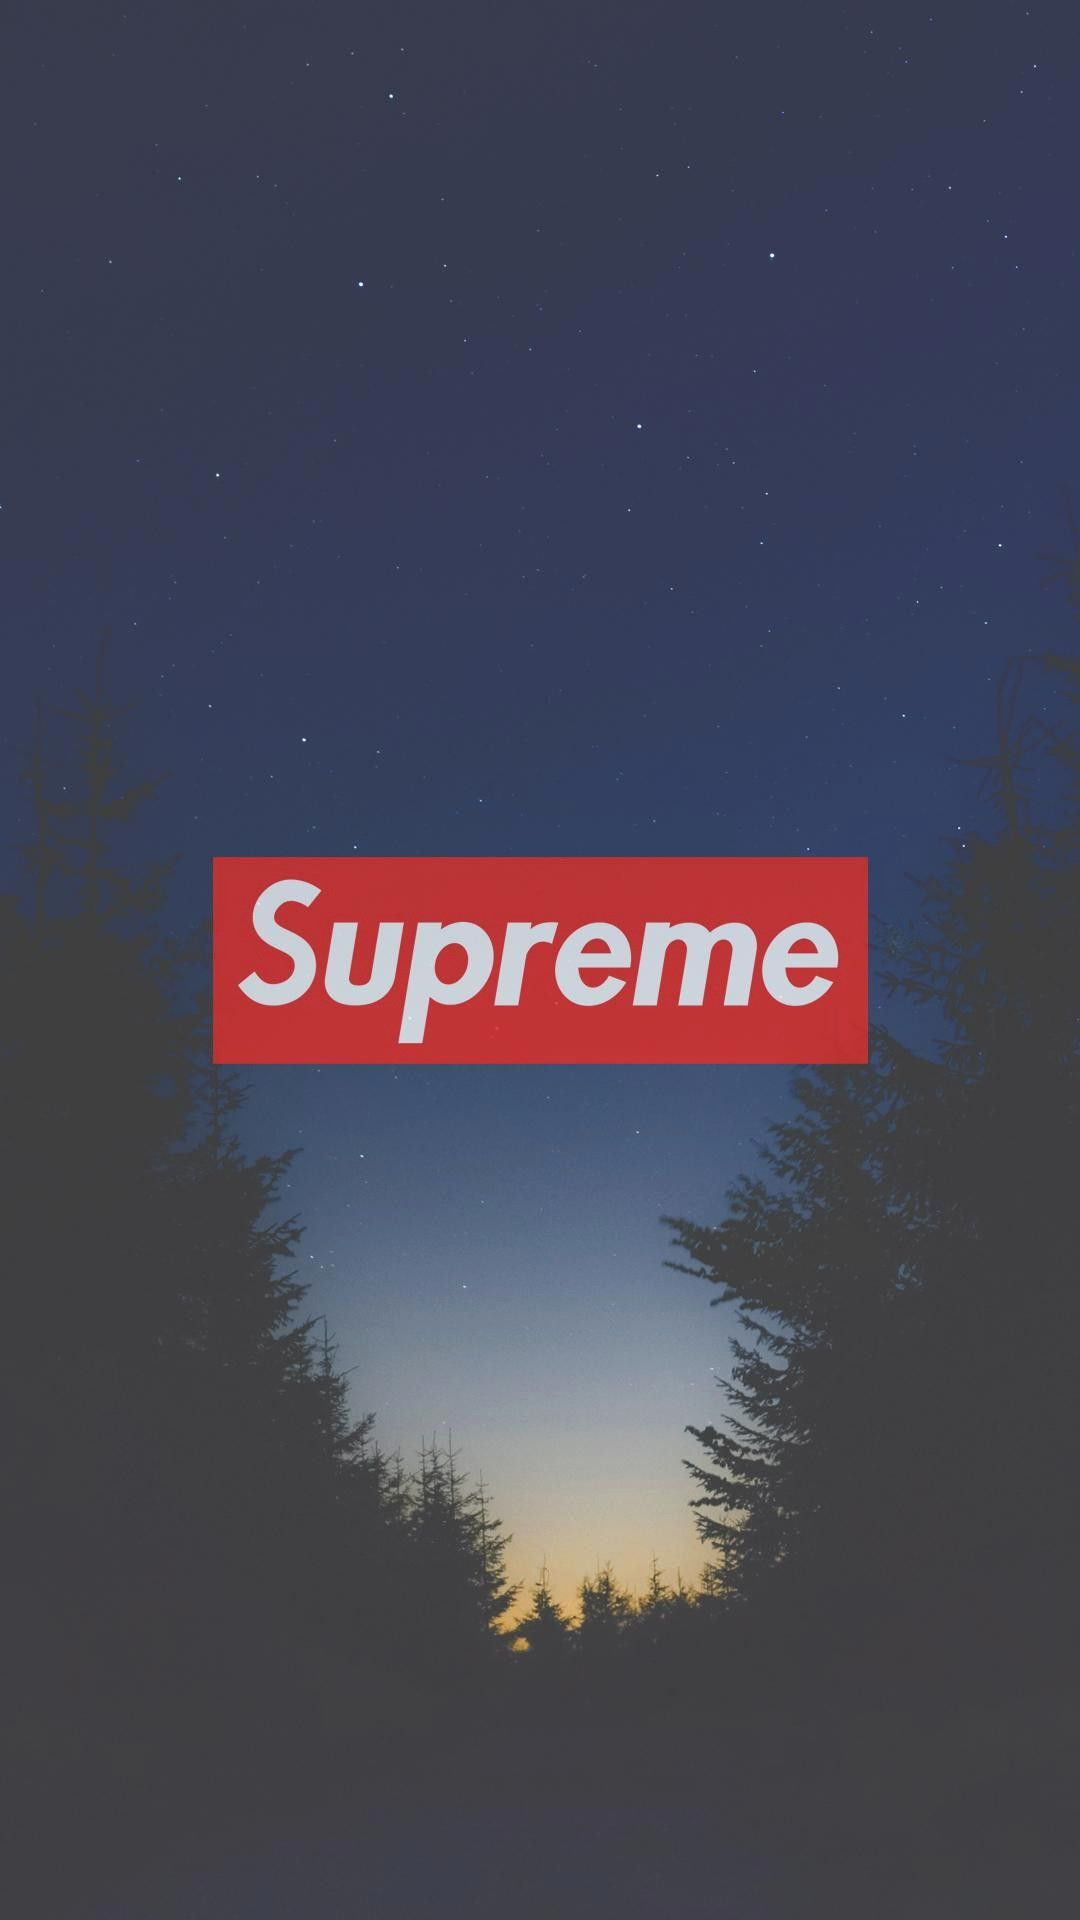 1080x1920 supreme wallpaper #194002